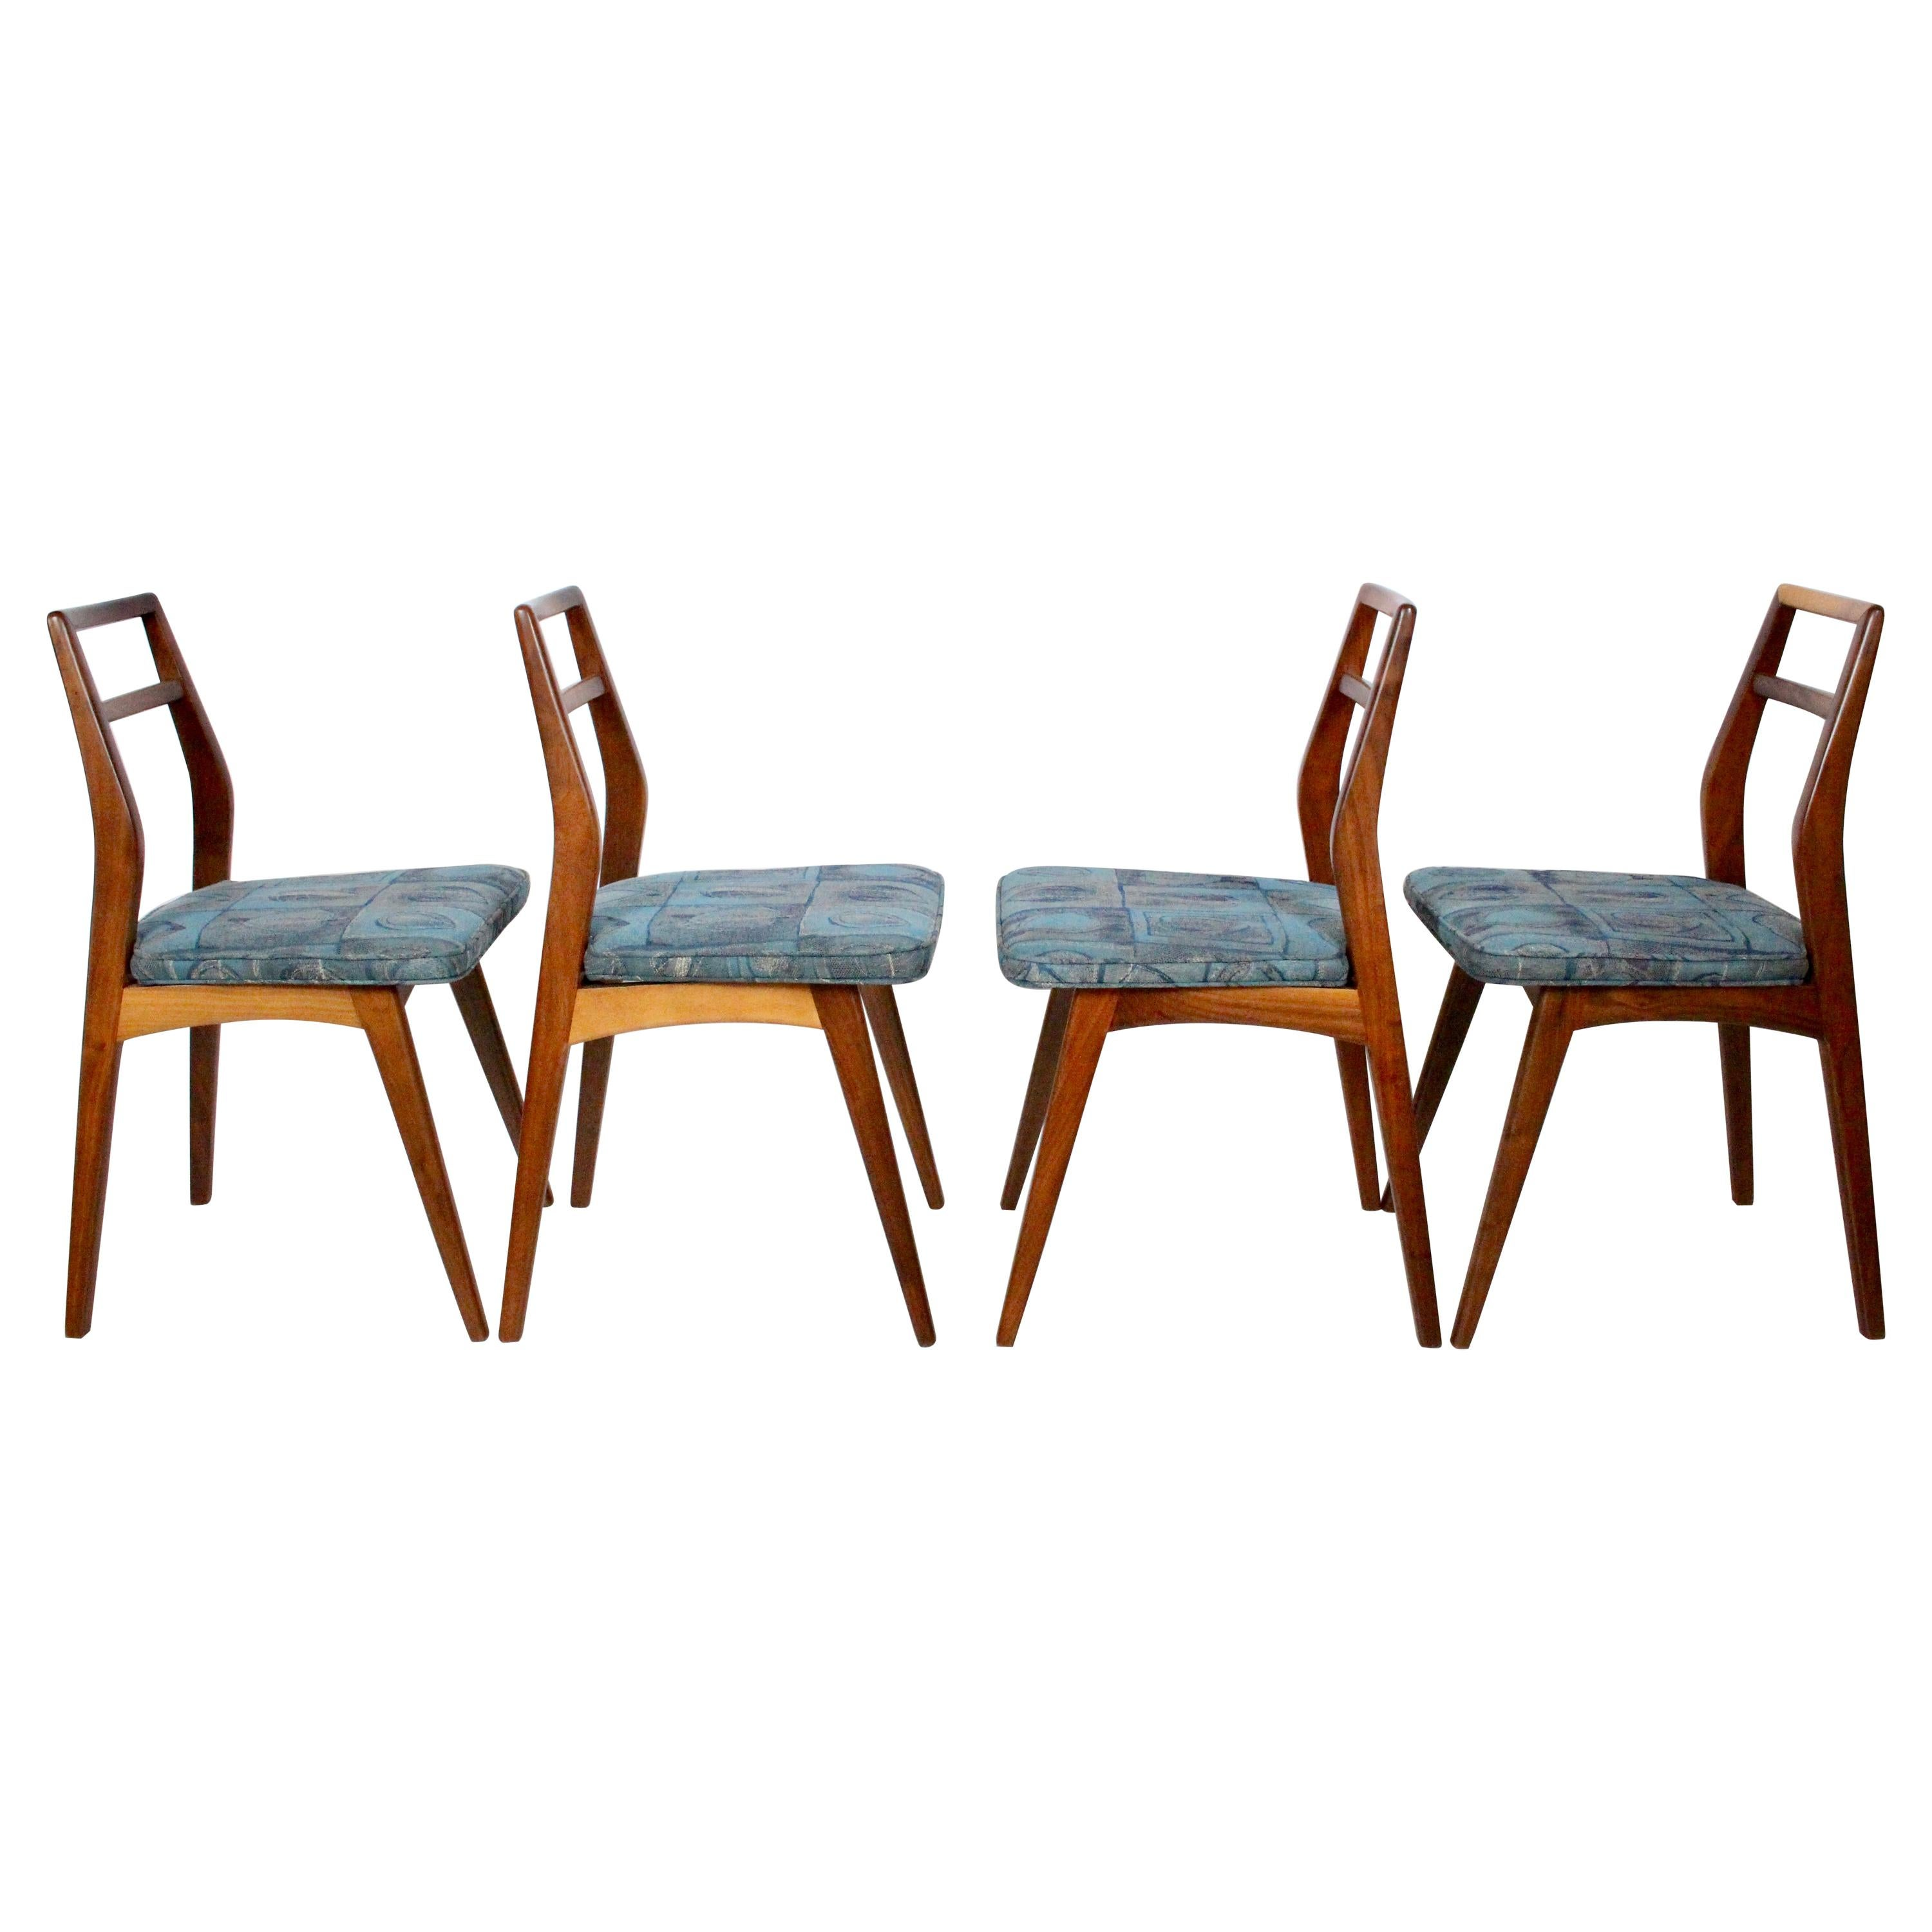 Set of Four Paul McCobb for O'Hearn Furniture Black Walnut Dining Side Chairs